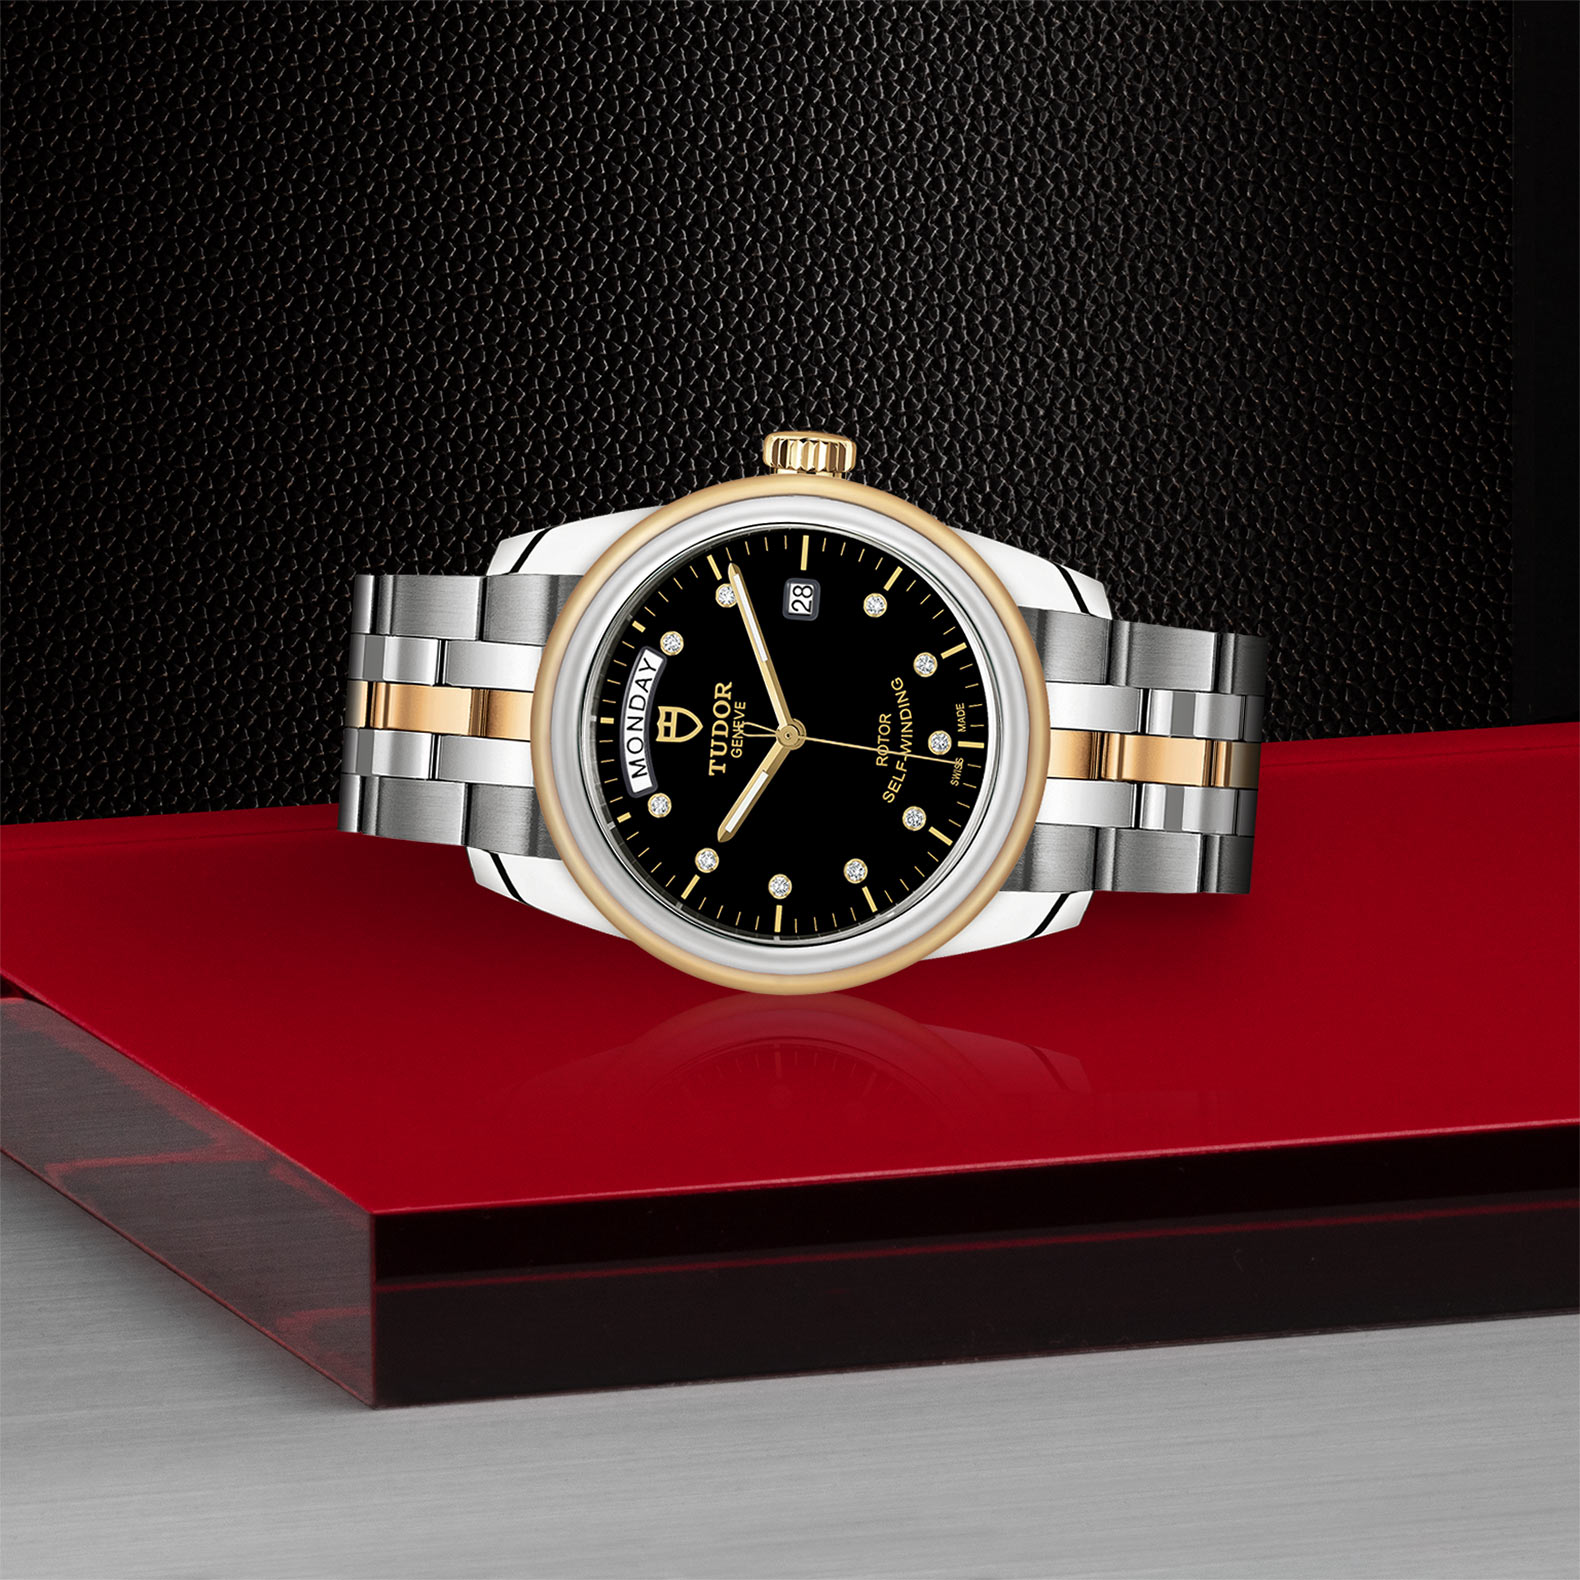 TUDOR Glamour Date+Day - M56003-0008